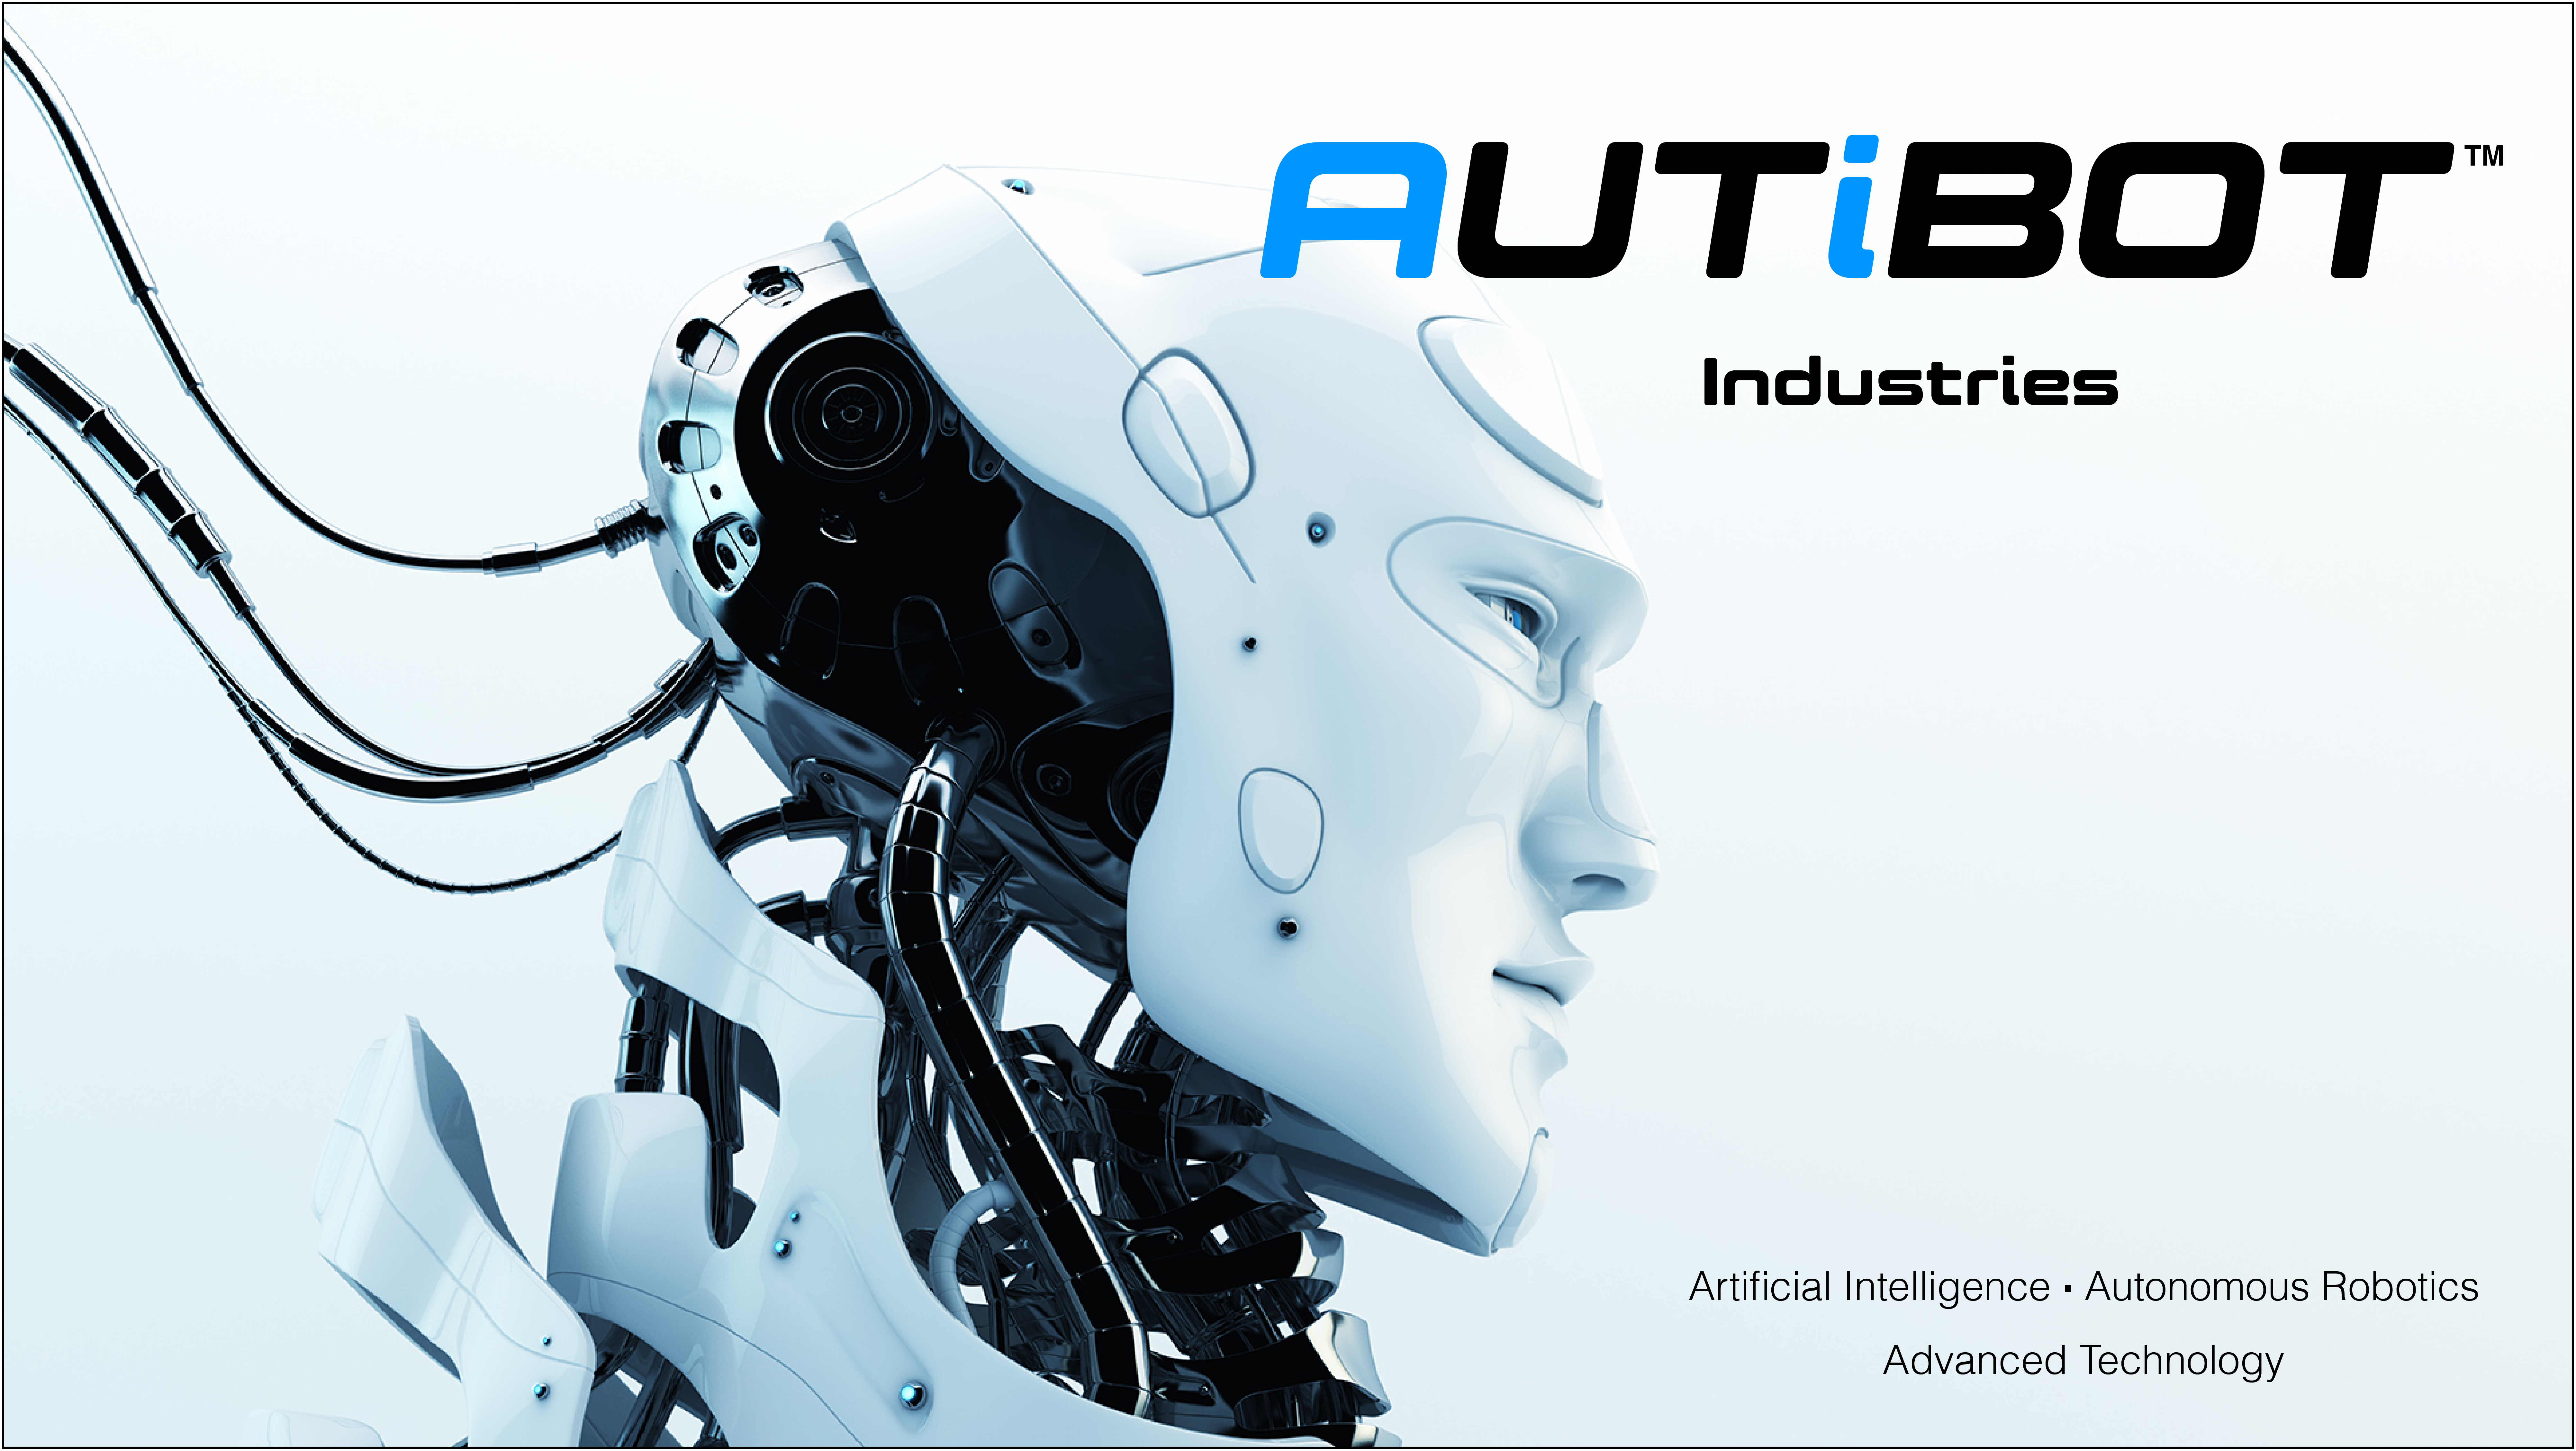 Image of Autibot Logo for business name Autibot that can be used for a robotics company startup with domain name Autibot.com